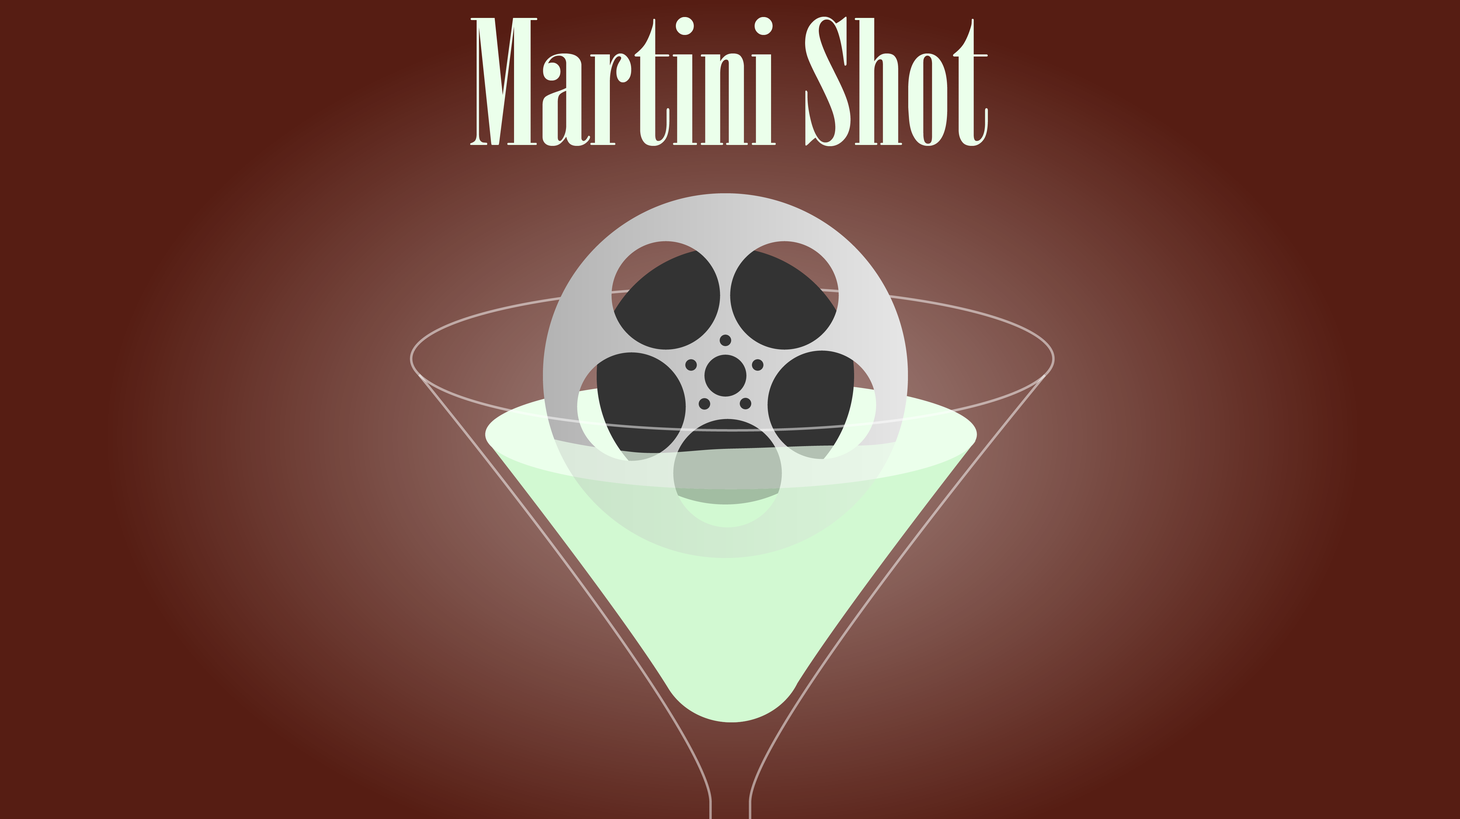 This is Rob Long, and on today's Martini Shot I tell the story of two actors up for the same part who interpreted the character very differently, and what happened after that. Spoiler alert: they both got the job. Which almost never happens.